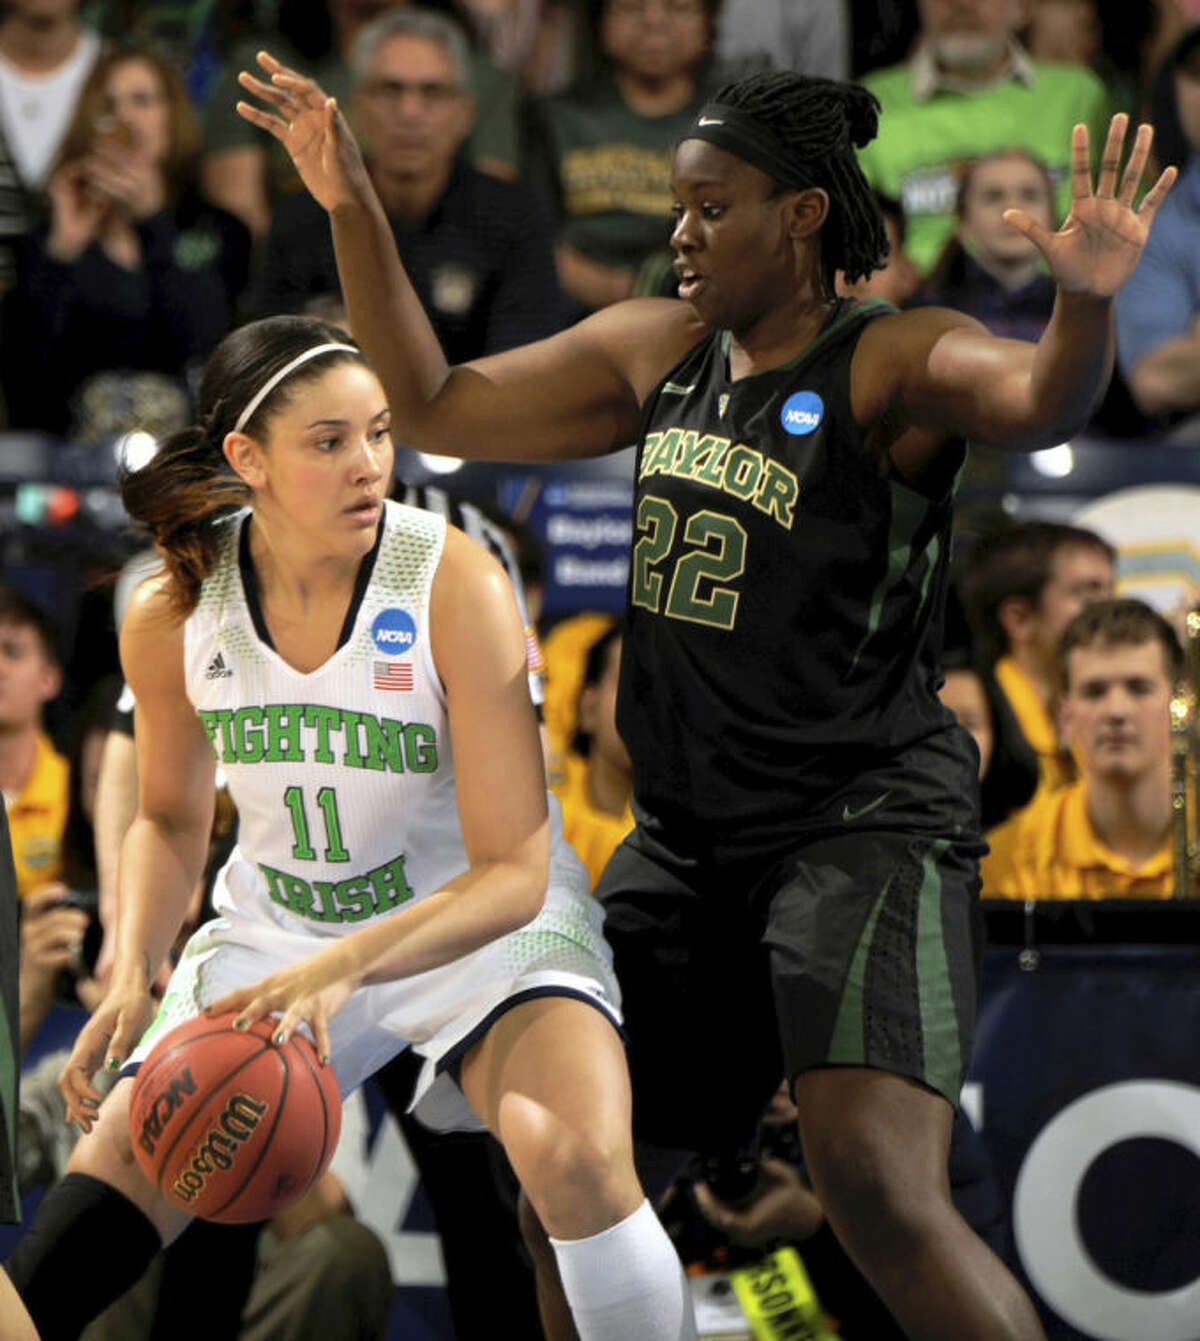 Notre Dame forward Natalie Achonwa drives the lane as Baylor center Sune Agbuke defends in the first half of their NCAA women's college basketball tournament regional final game at the Purcell Pavilion in South Bend, Ind., Monday March 31, 2014. (AP Photo/Joe Raymond)